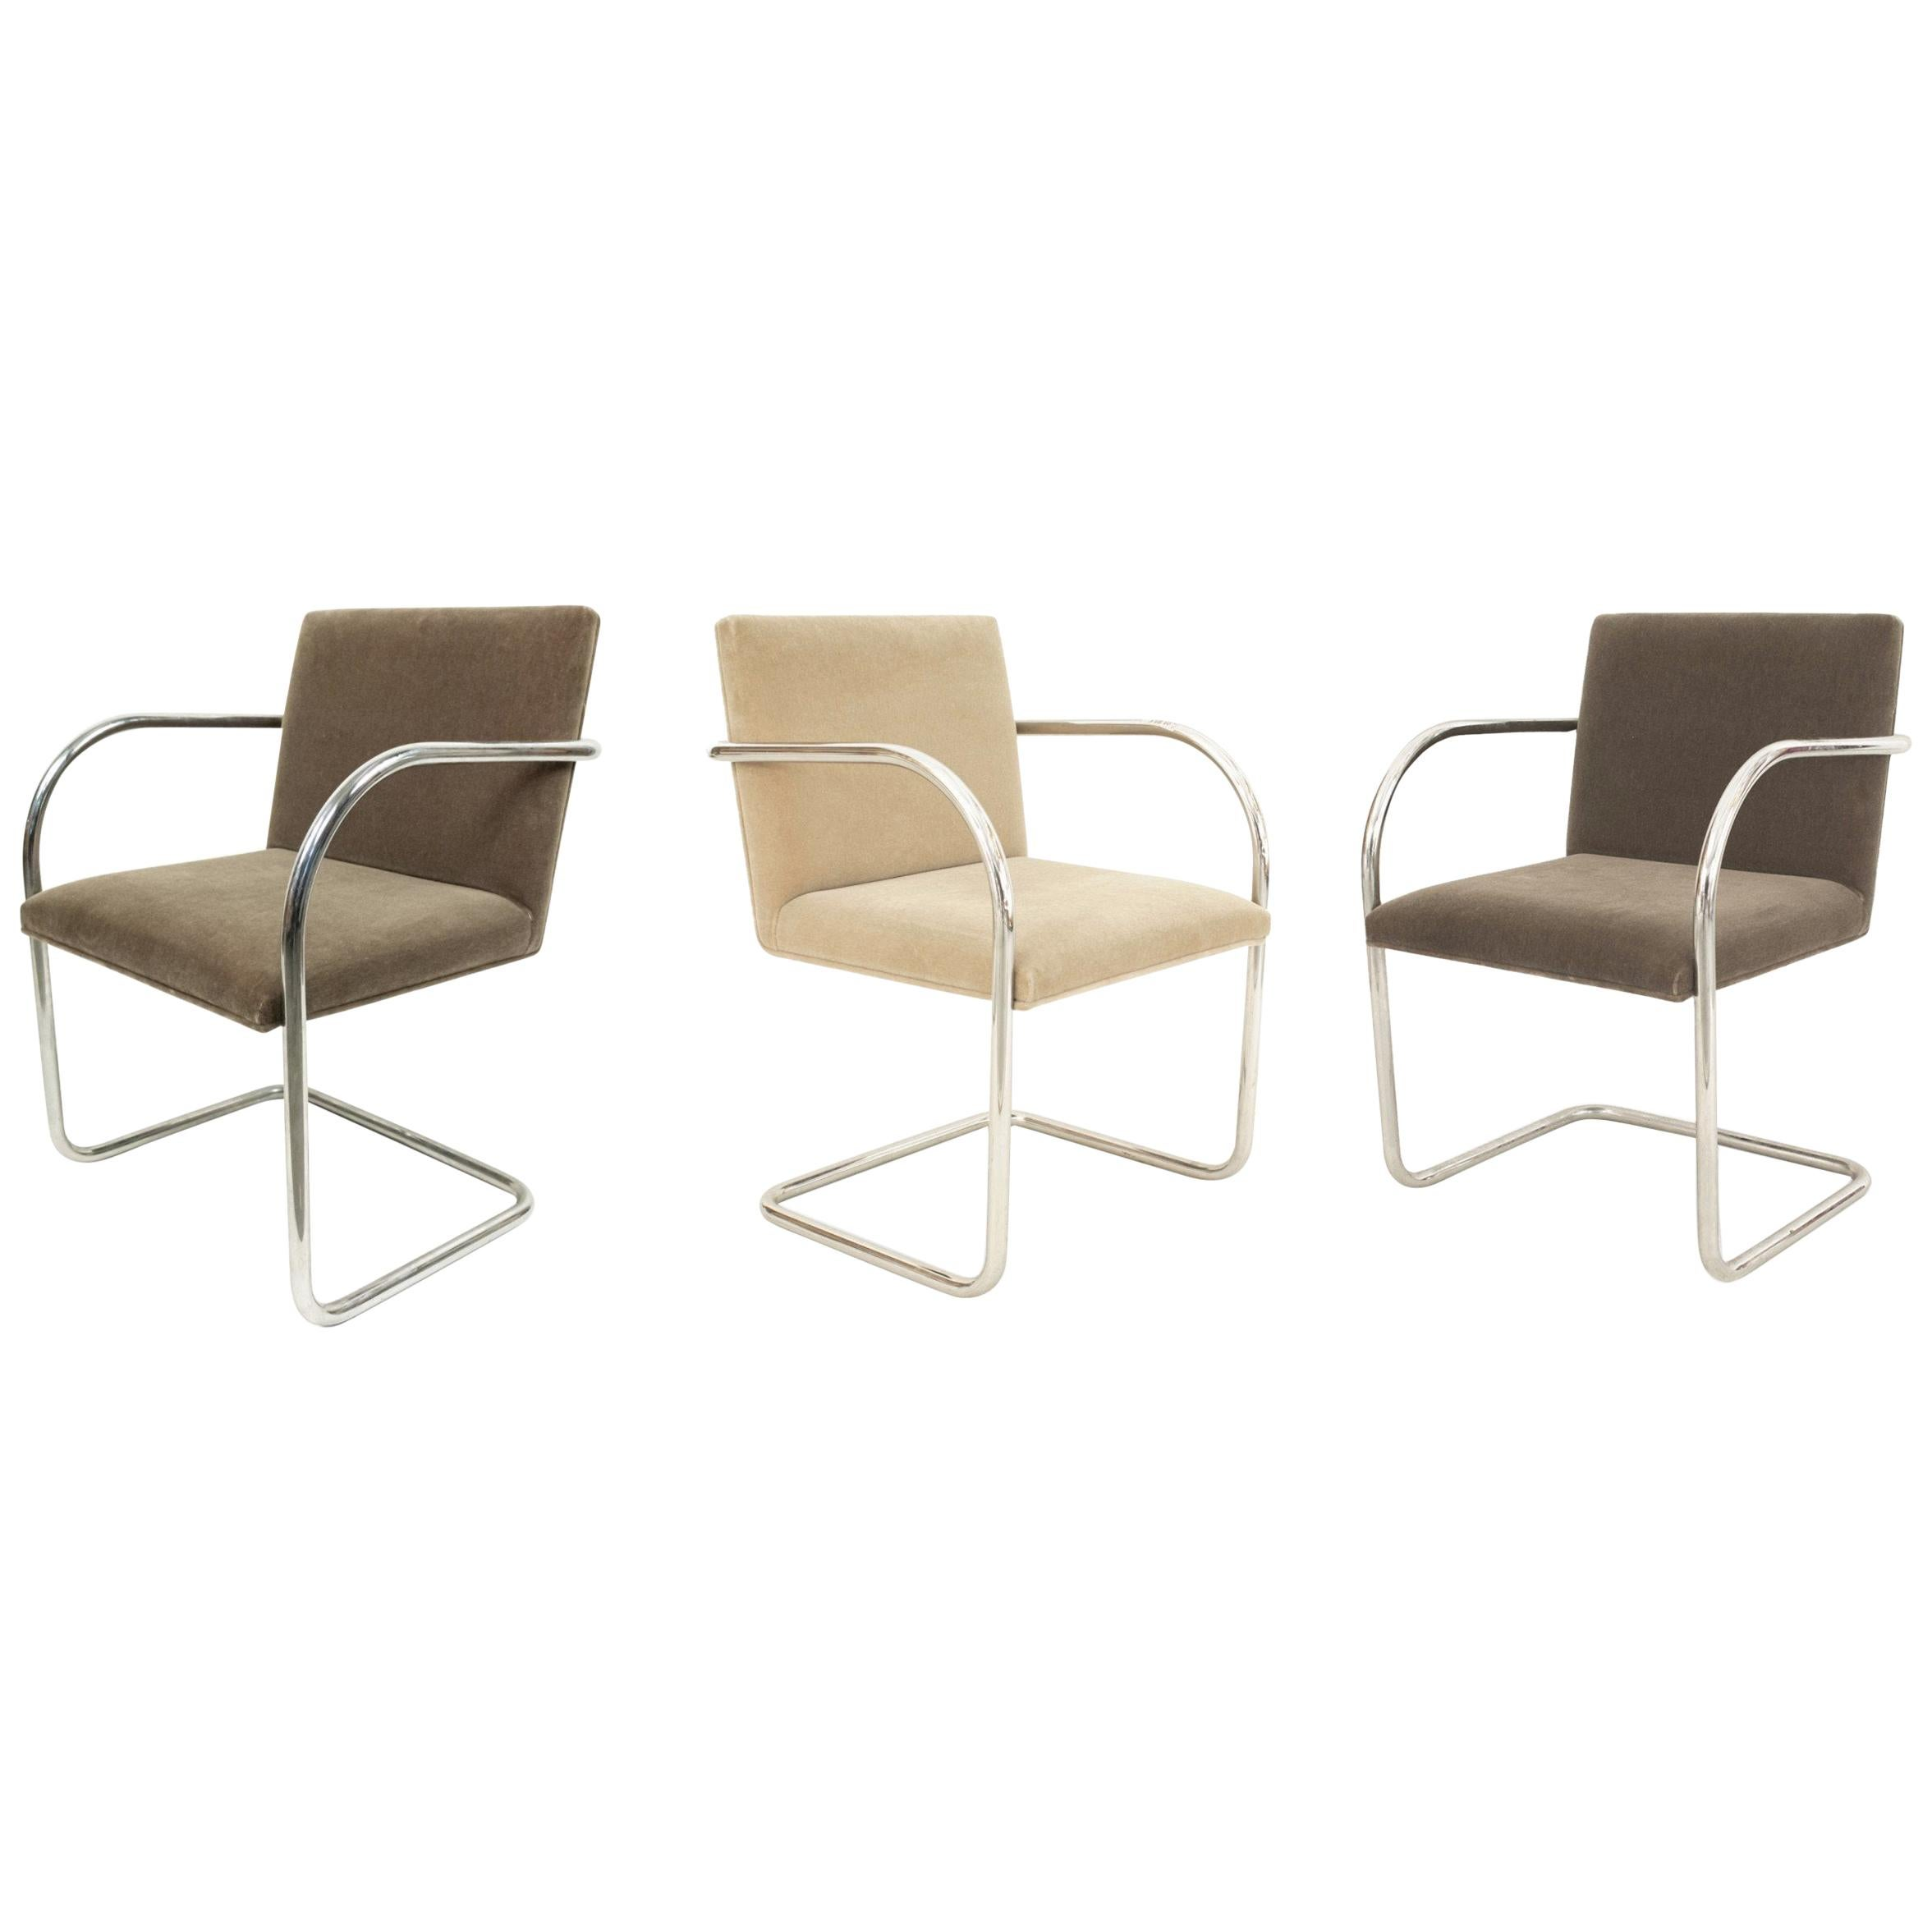 American Post-War Design Leather Chairs